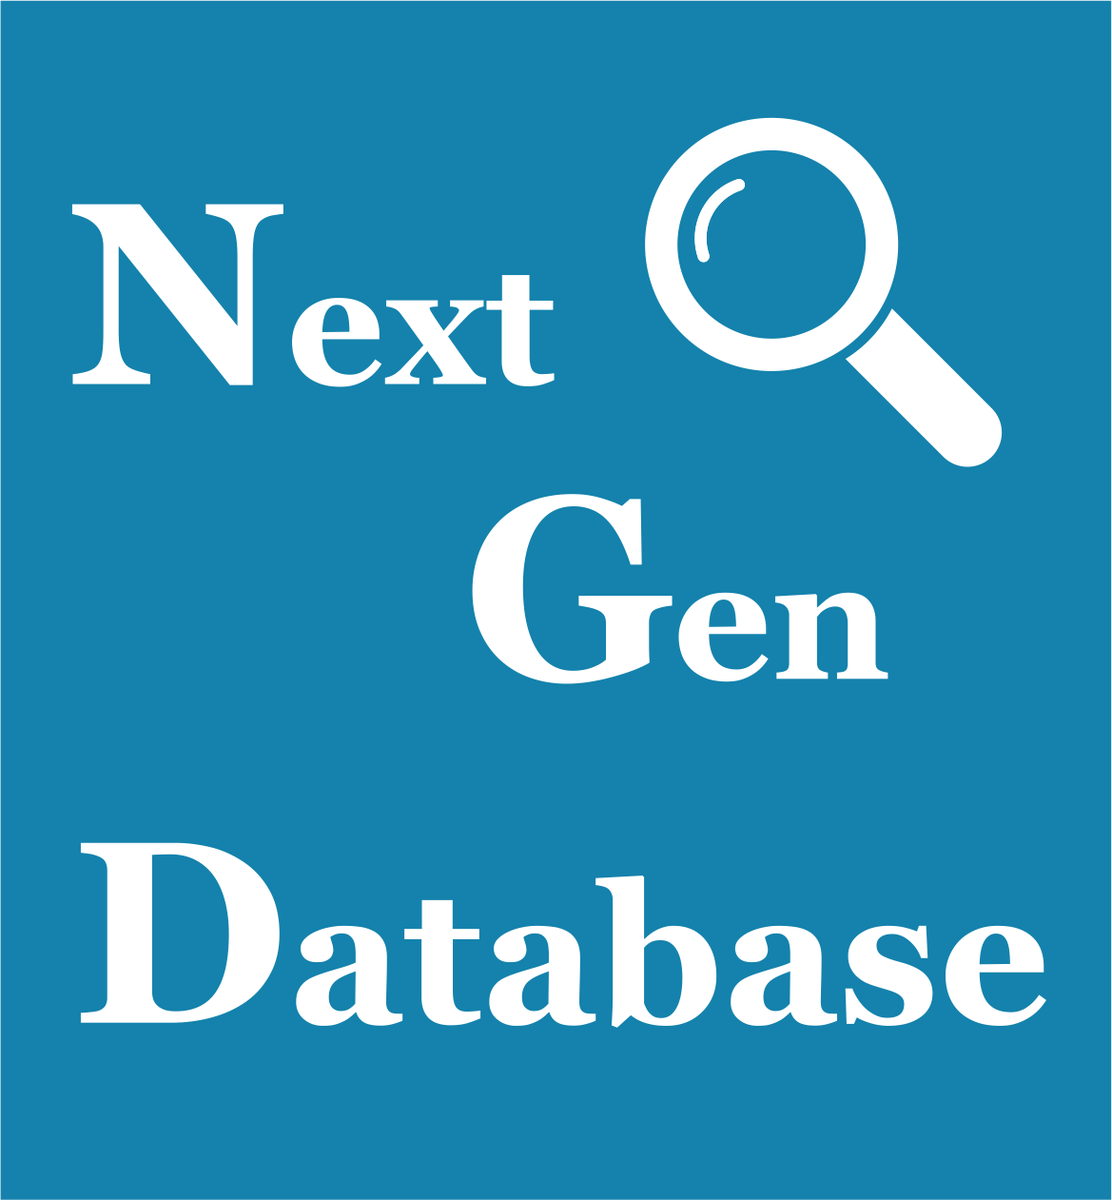 Excited to announce #NextGenDatabase launch from @CCICCCCI &amp; @CASID_ACEDI: a collaborative resource for #researchers #academics in #intdev<br>http://pic.twitter.com/bw7mmjrWjw